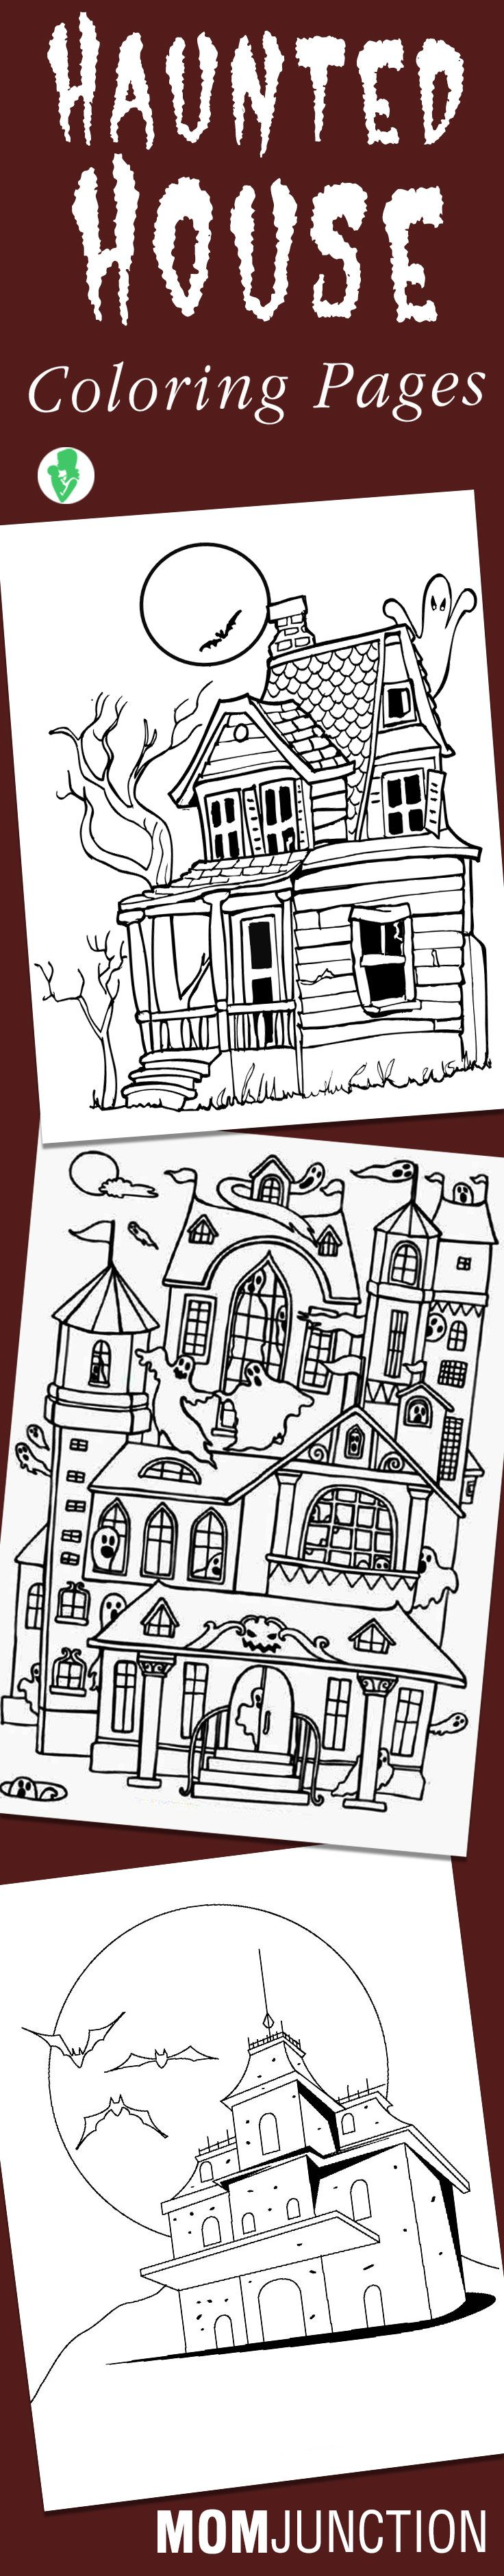 Top 25 Free Printable Haunted House Coloring Pages Online Child